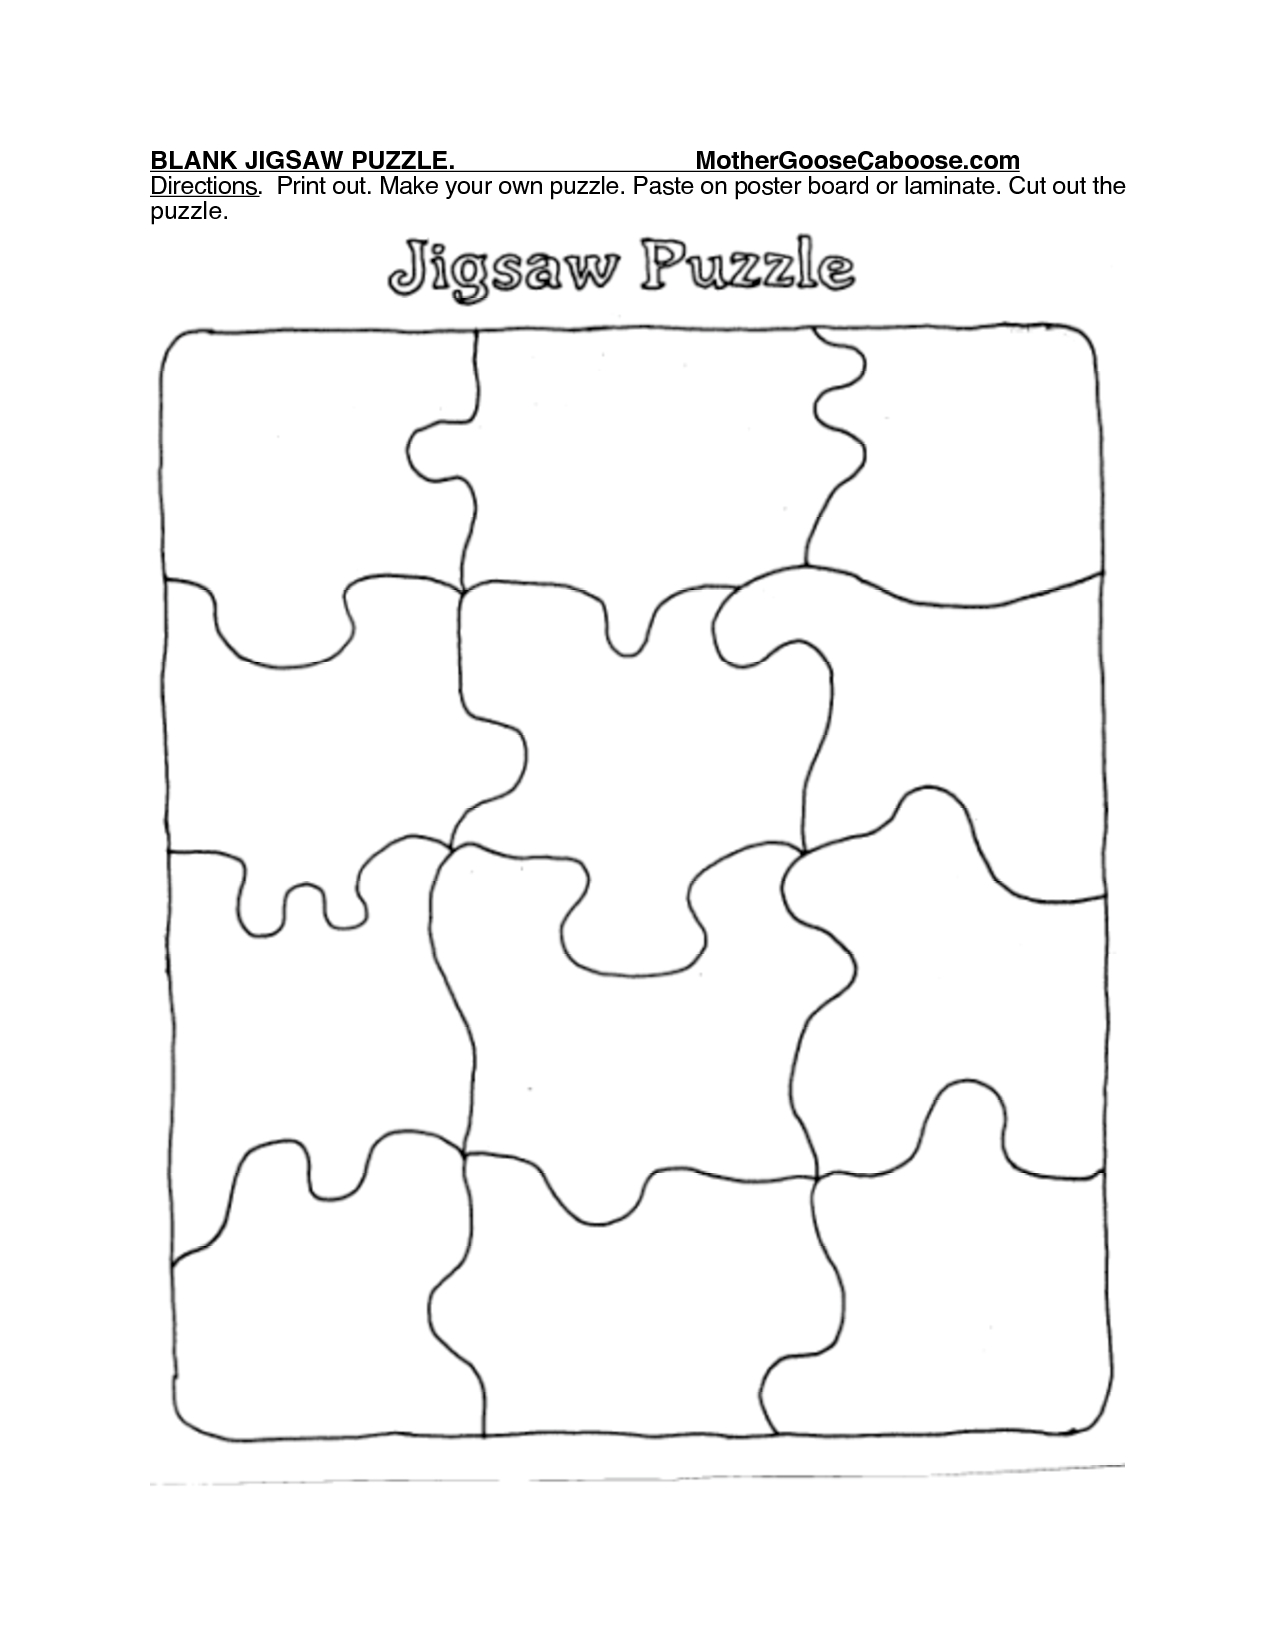 Printable Puzzle Piece Template | Search Results | New Calendar - Printable Jigsaw Puzzles 6 Pieces